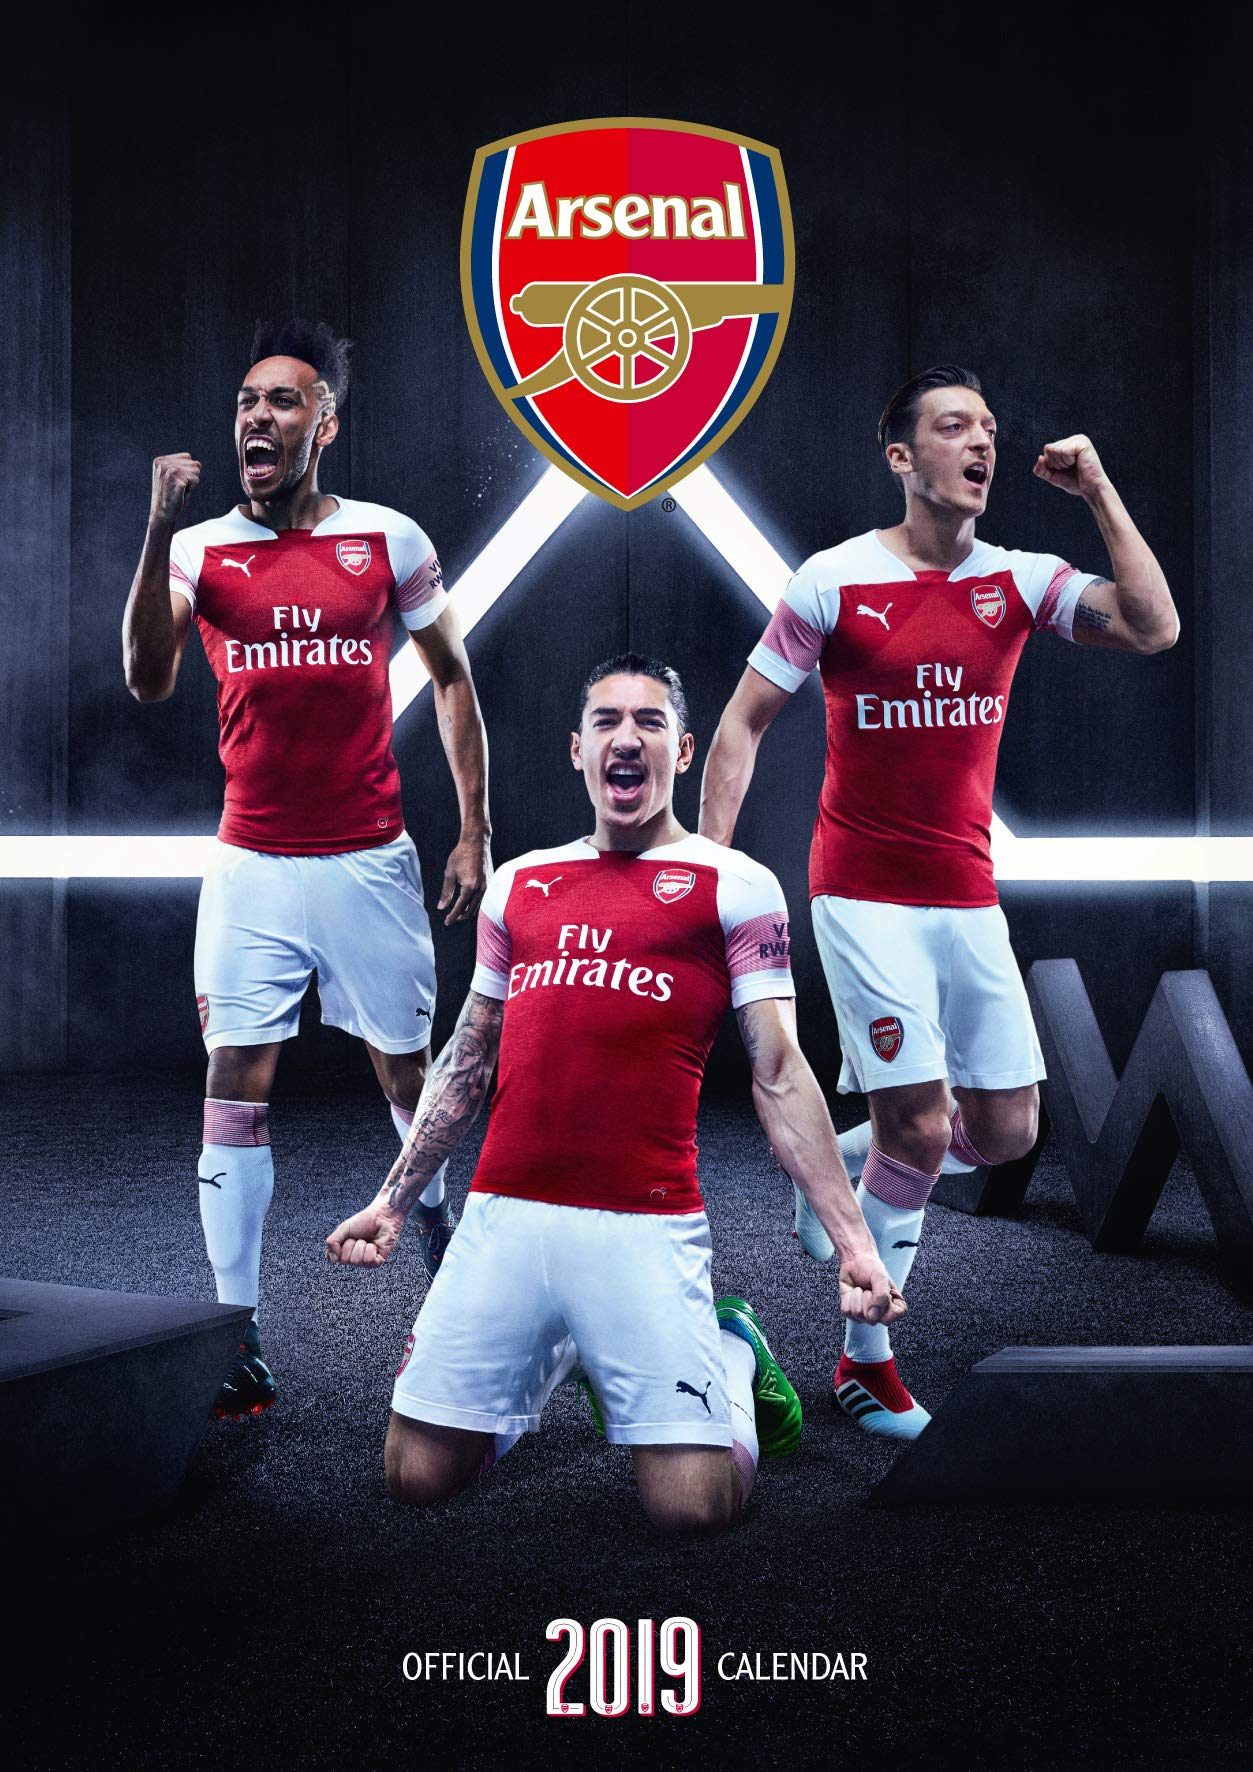 e663ec5a7 The Official Arsenal F.C. Calendar 2019  Arsenal F.C.  9781785497858 ...